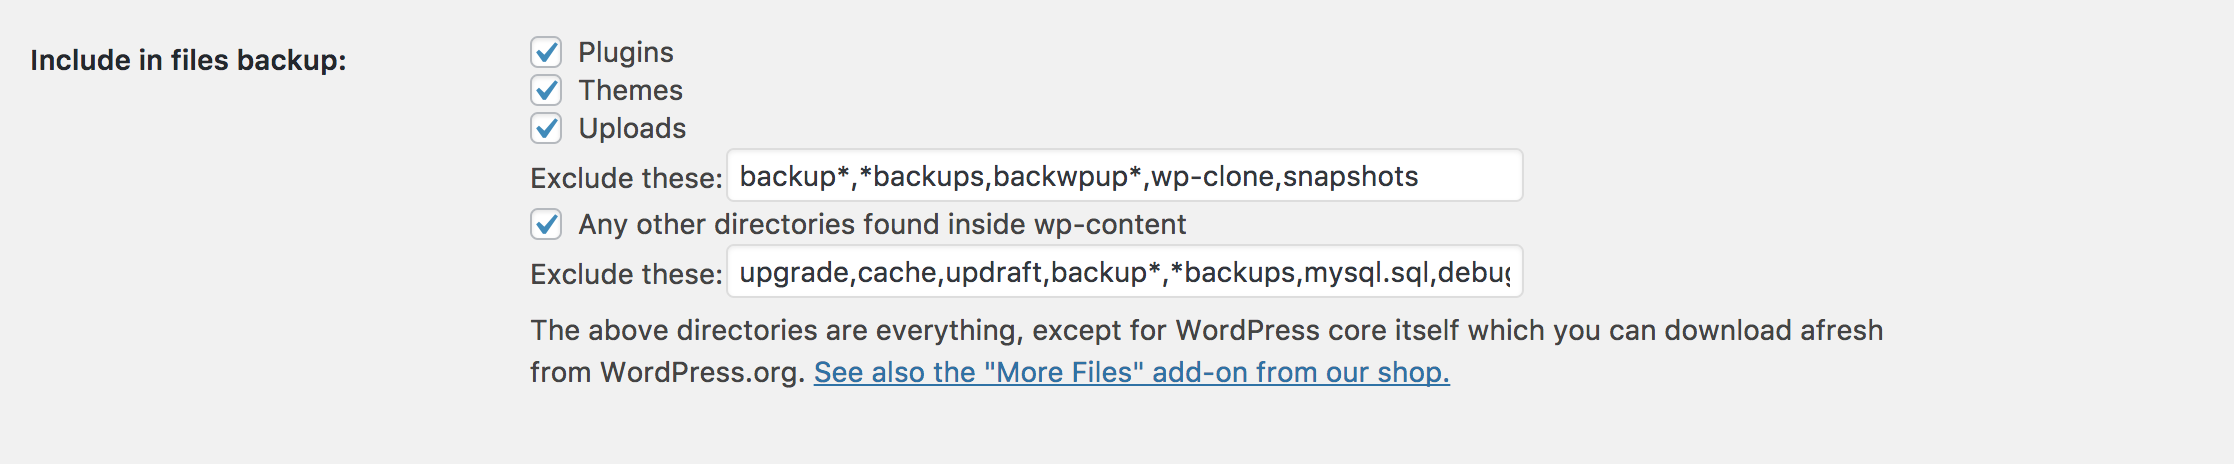 Include Exclude File Options